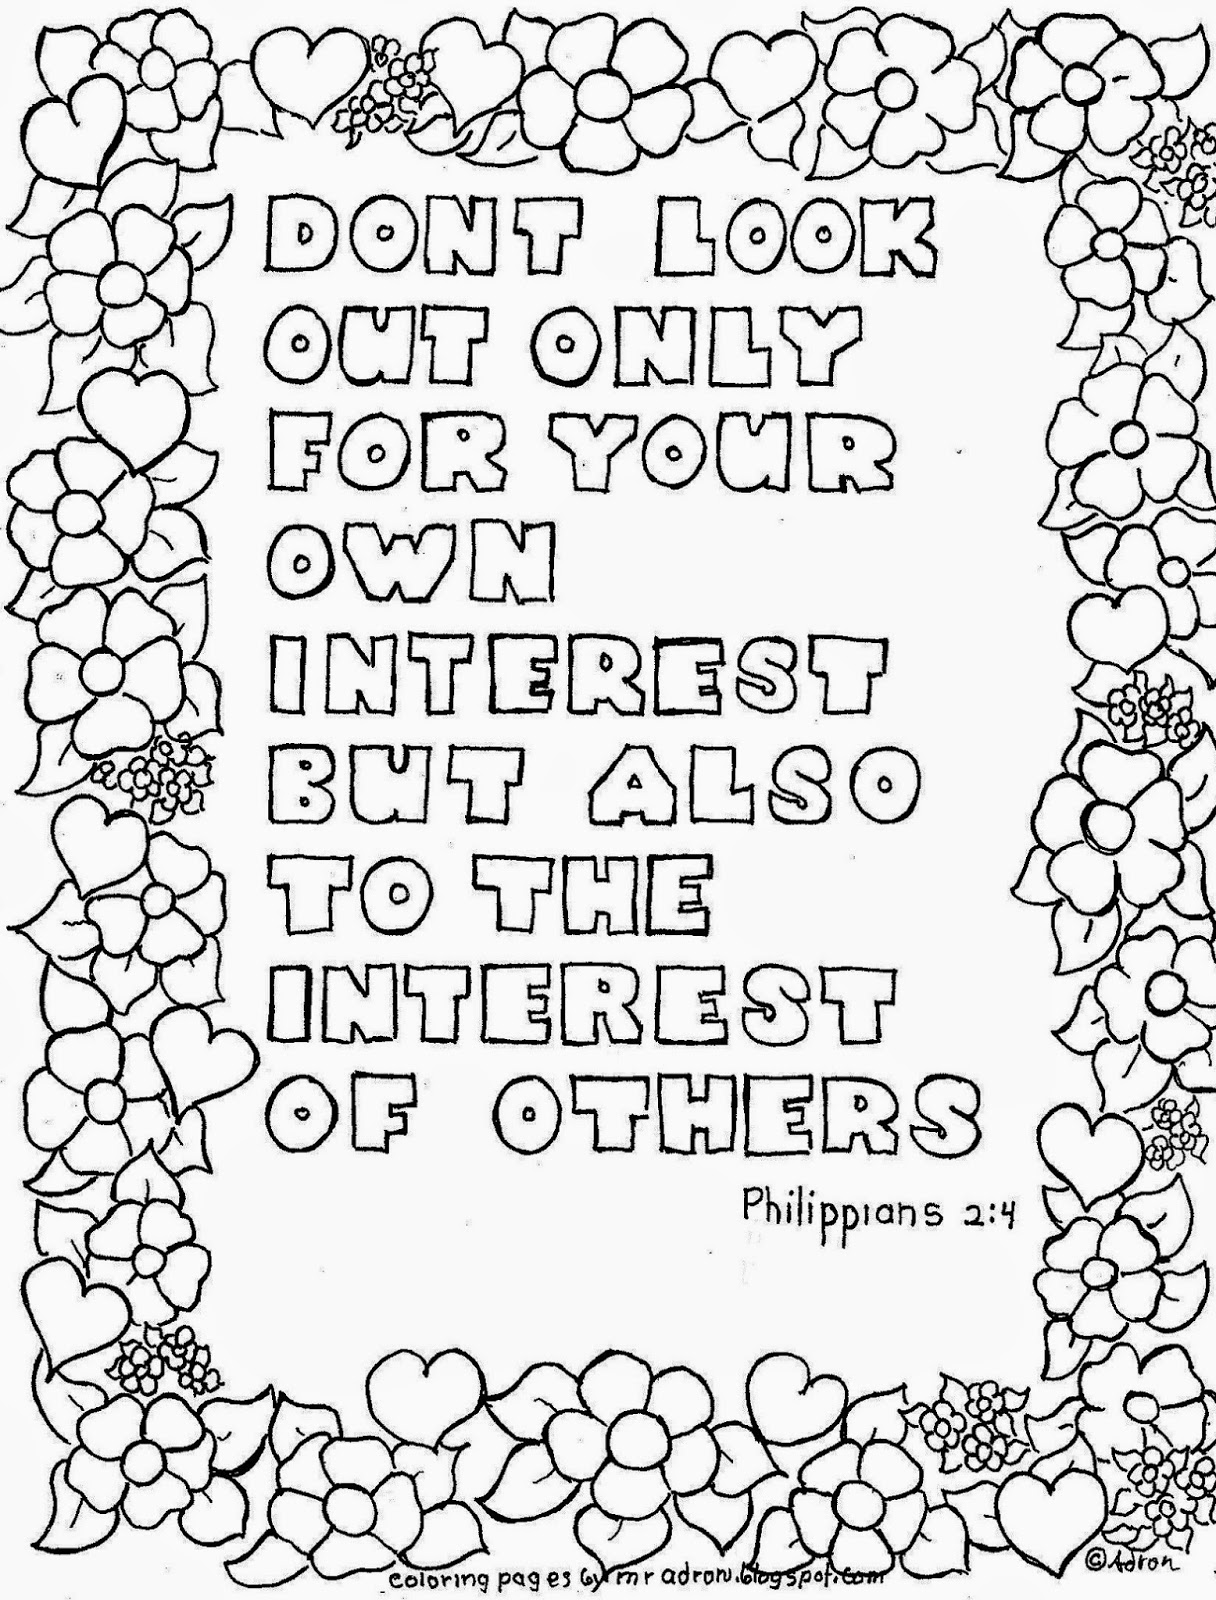 Coloring Pages For Kids By Mr Adron Look To The Interest Of Others Printable Coloring Page